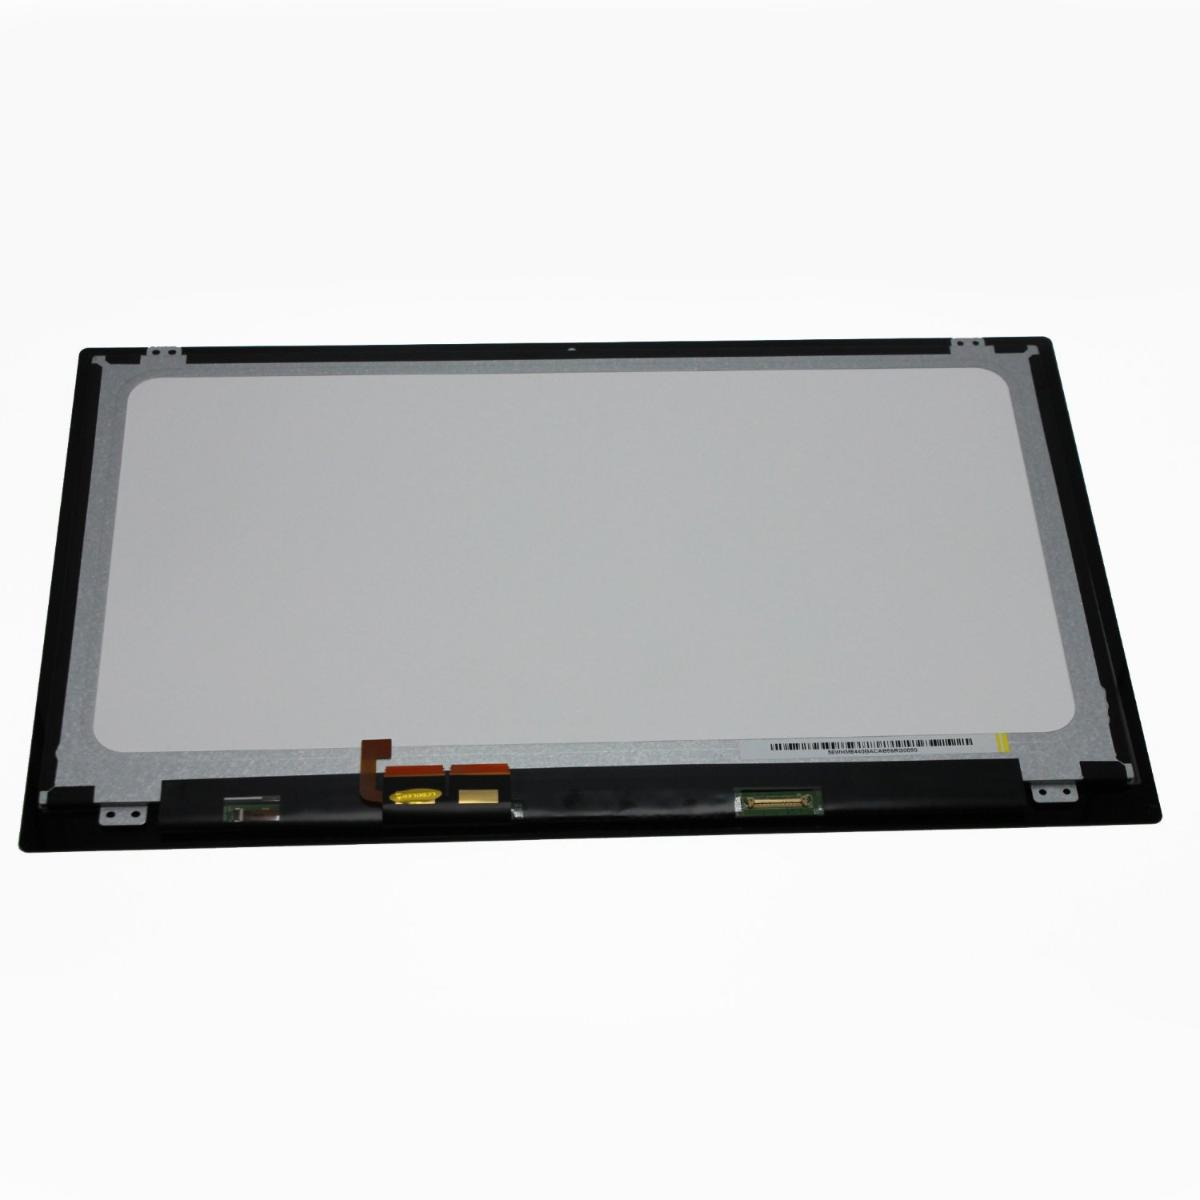 15.6 LCD LED Screen Display Panel Touch Acer ASPIRE V5-571P-6887(Κώδ.2850)